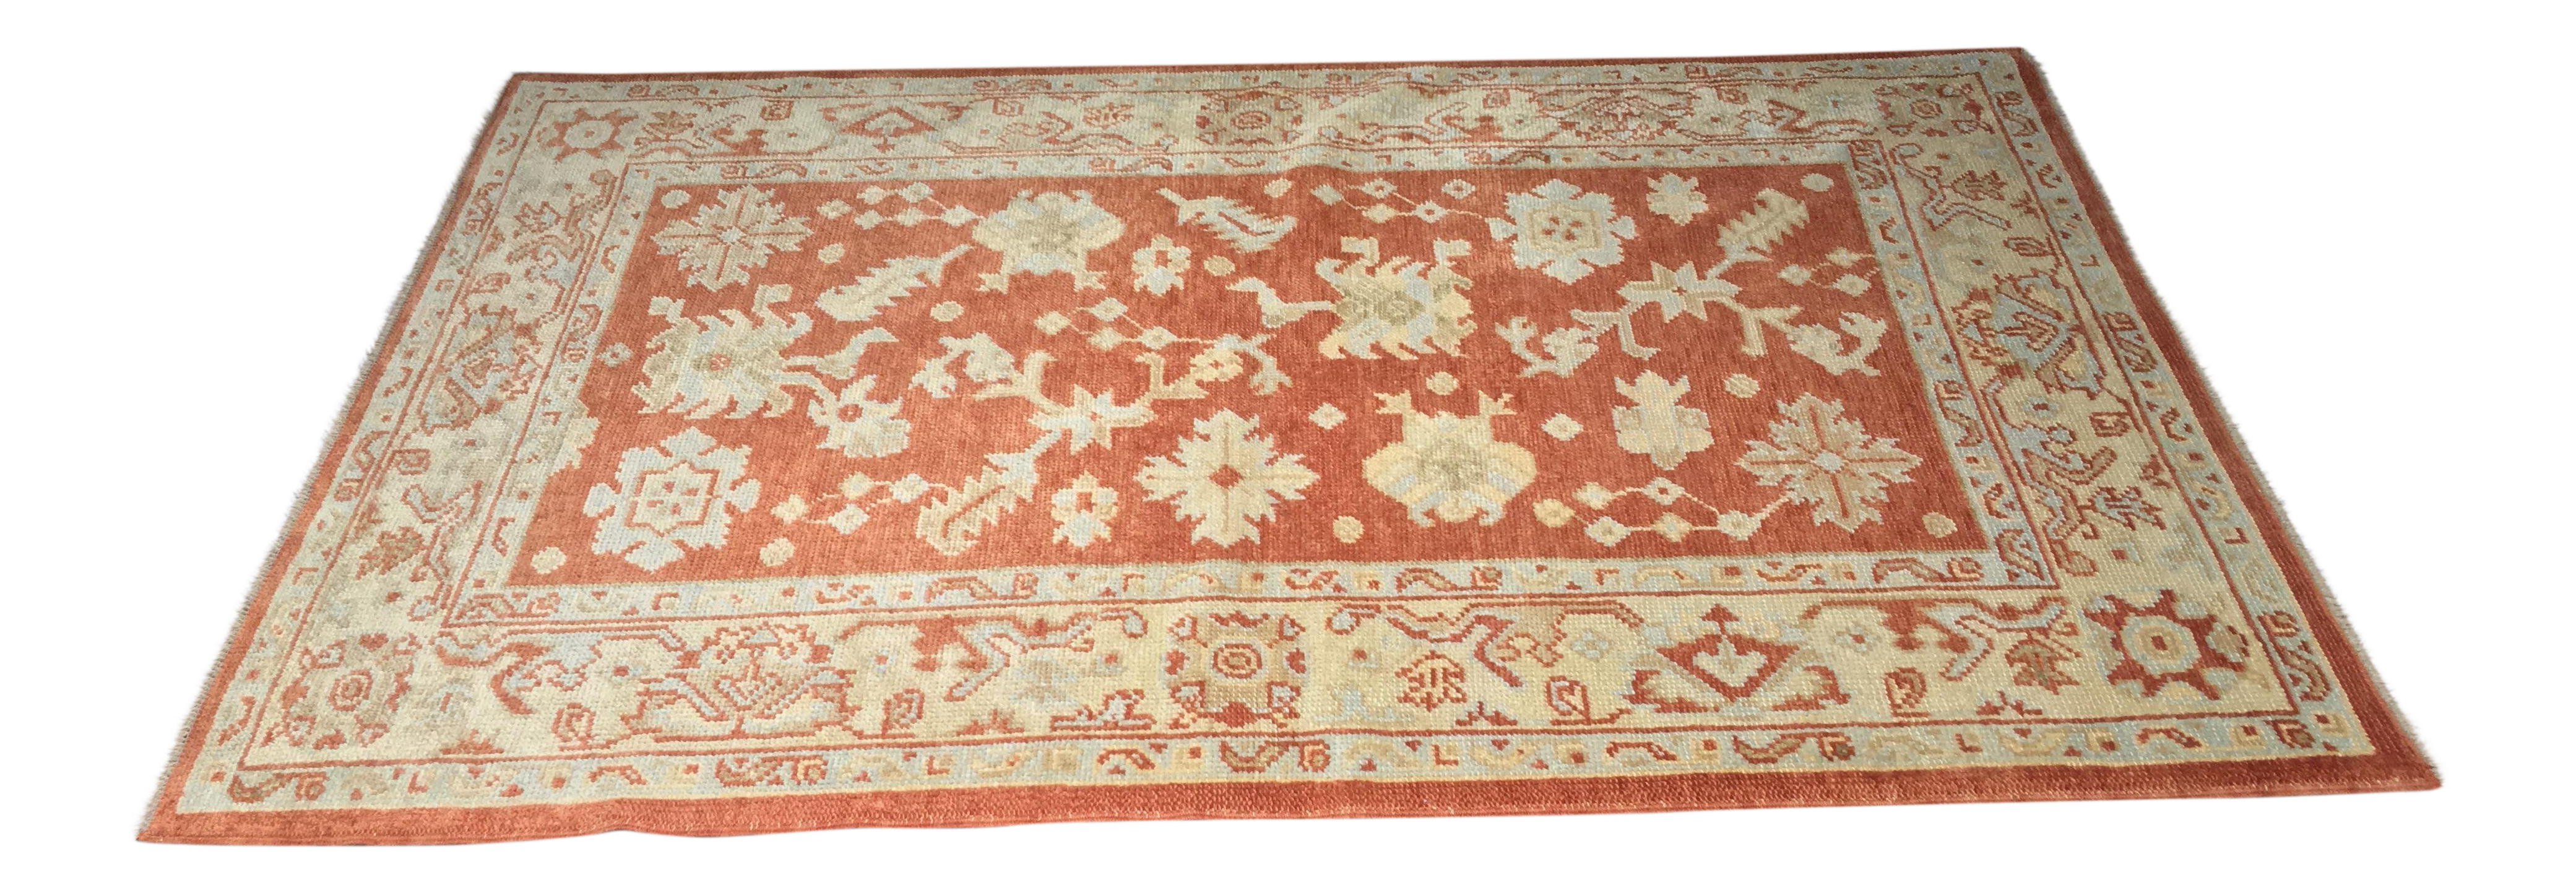 Area rug png. Carpet images free download